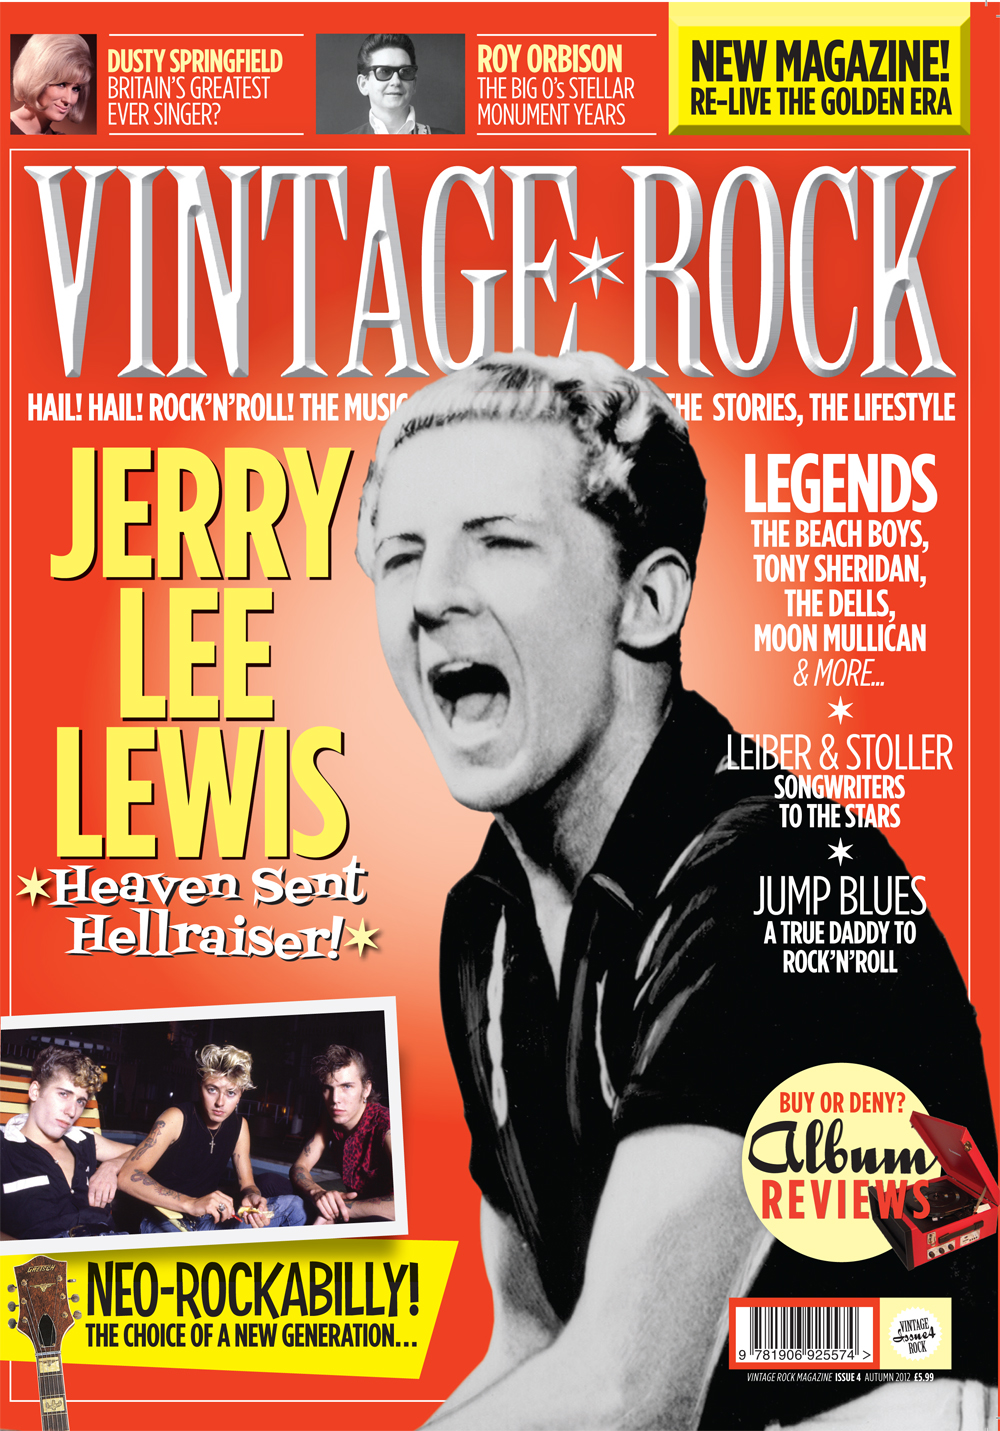 Issue Four Of Vintage Rock Is On Sale Now!